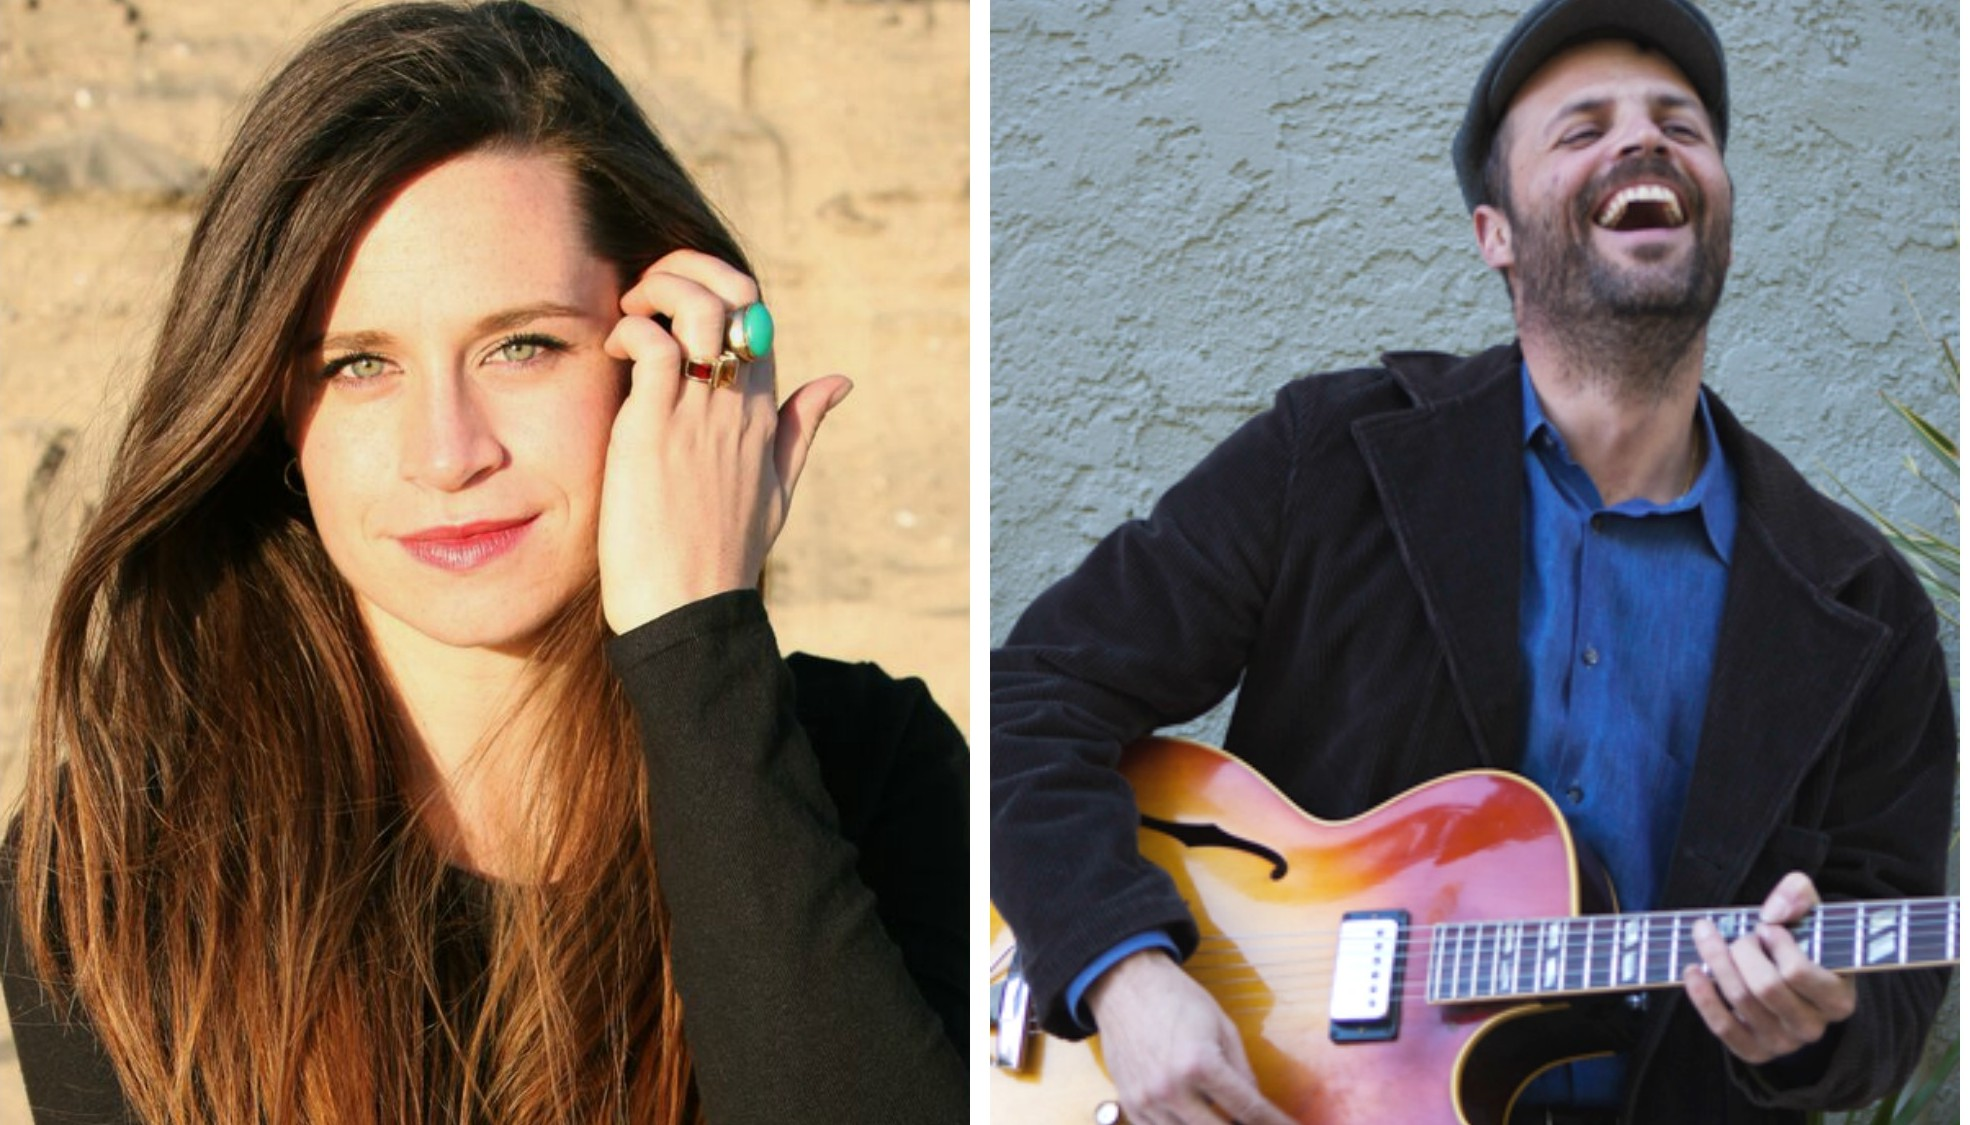 Getting Naked, with Guest Kimber Kabell and Musical Guests Lorenzo Grassi and Jasmine Tommaso on LIFE CHANGES - Radio Show #344 - Pg 2